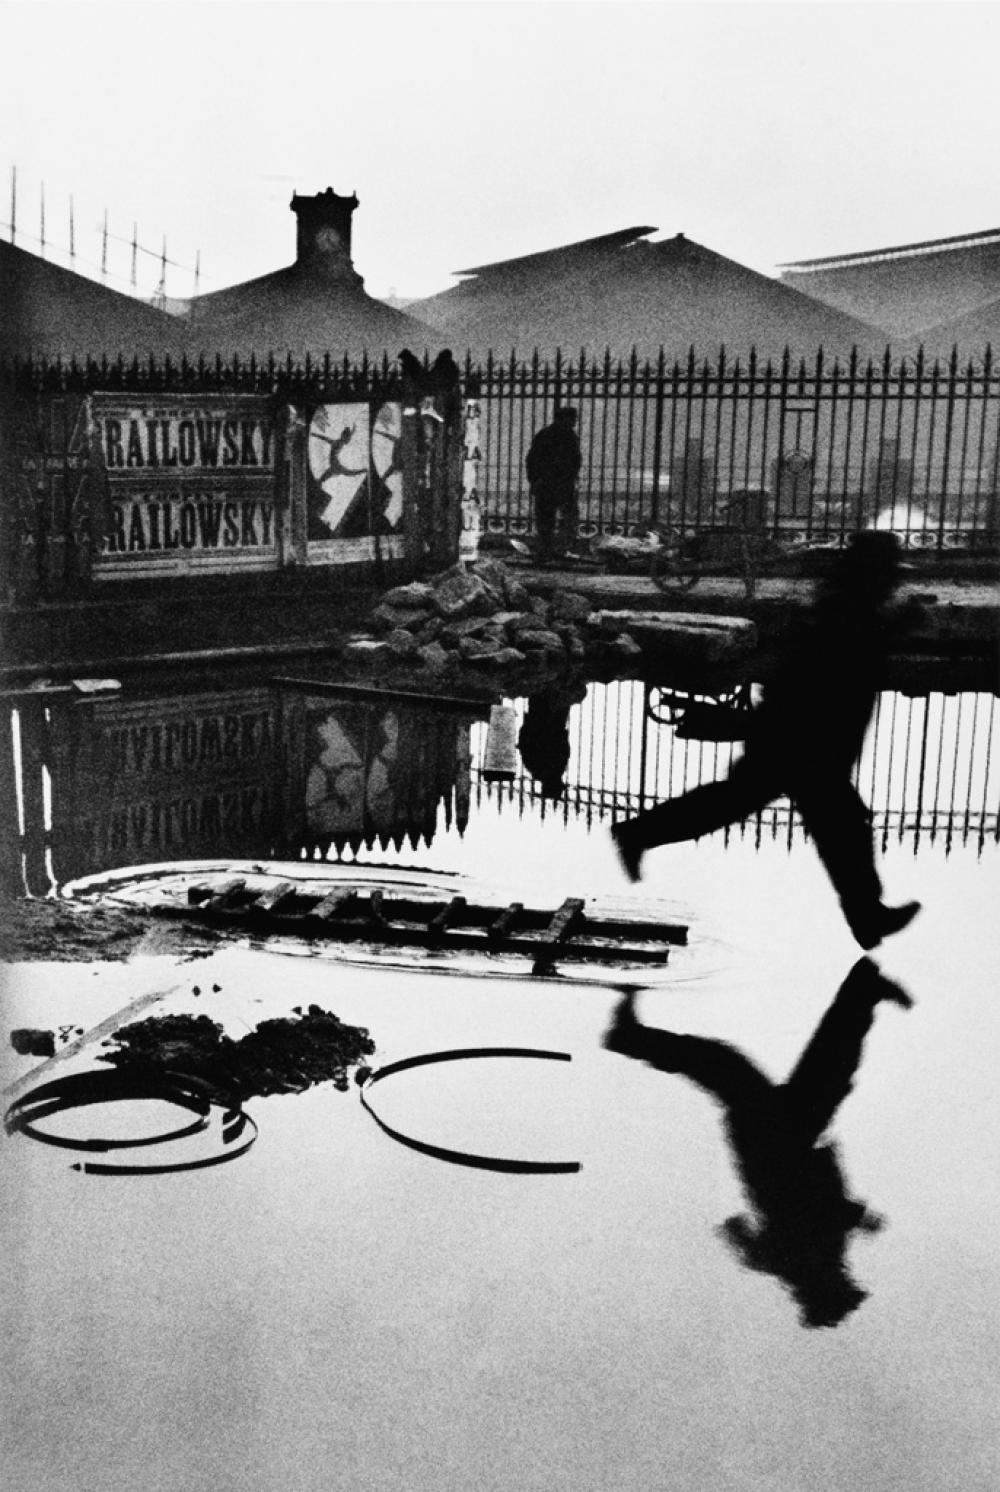 HENRI CARTIER-BRESSON (1908-2004) Behind the Gare Saint-Lazare, Paris.